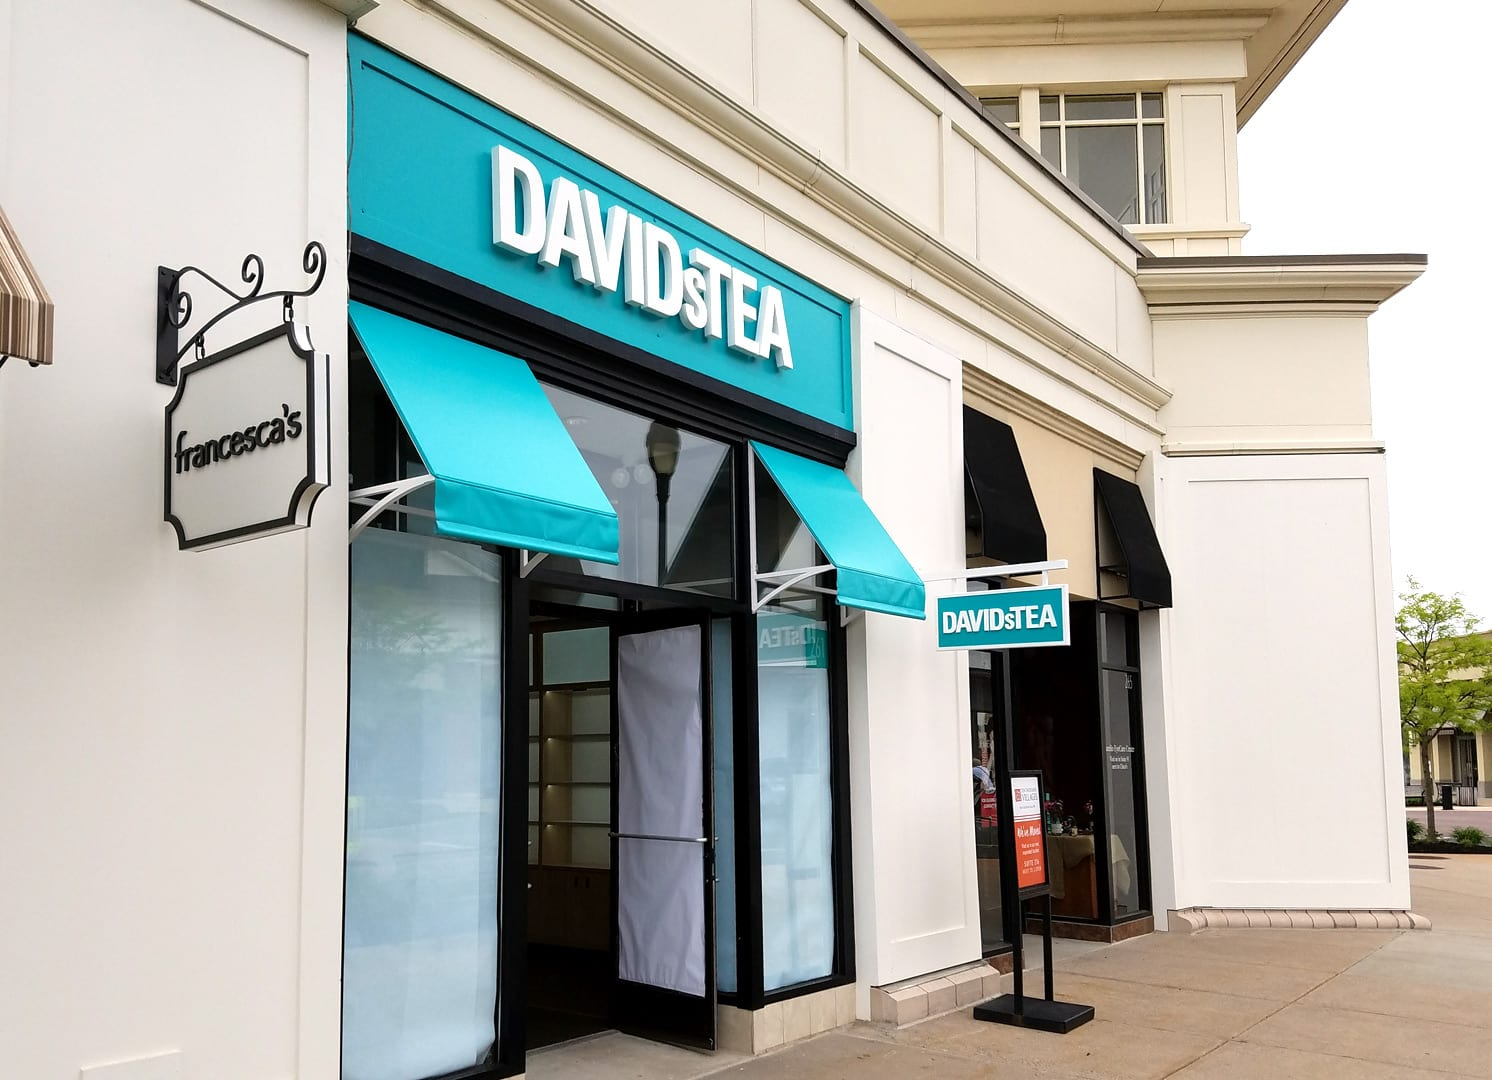 Exterior and Hanging sign for Davids Tea